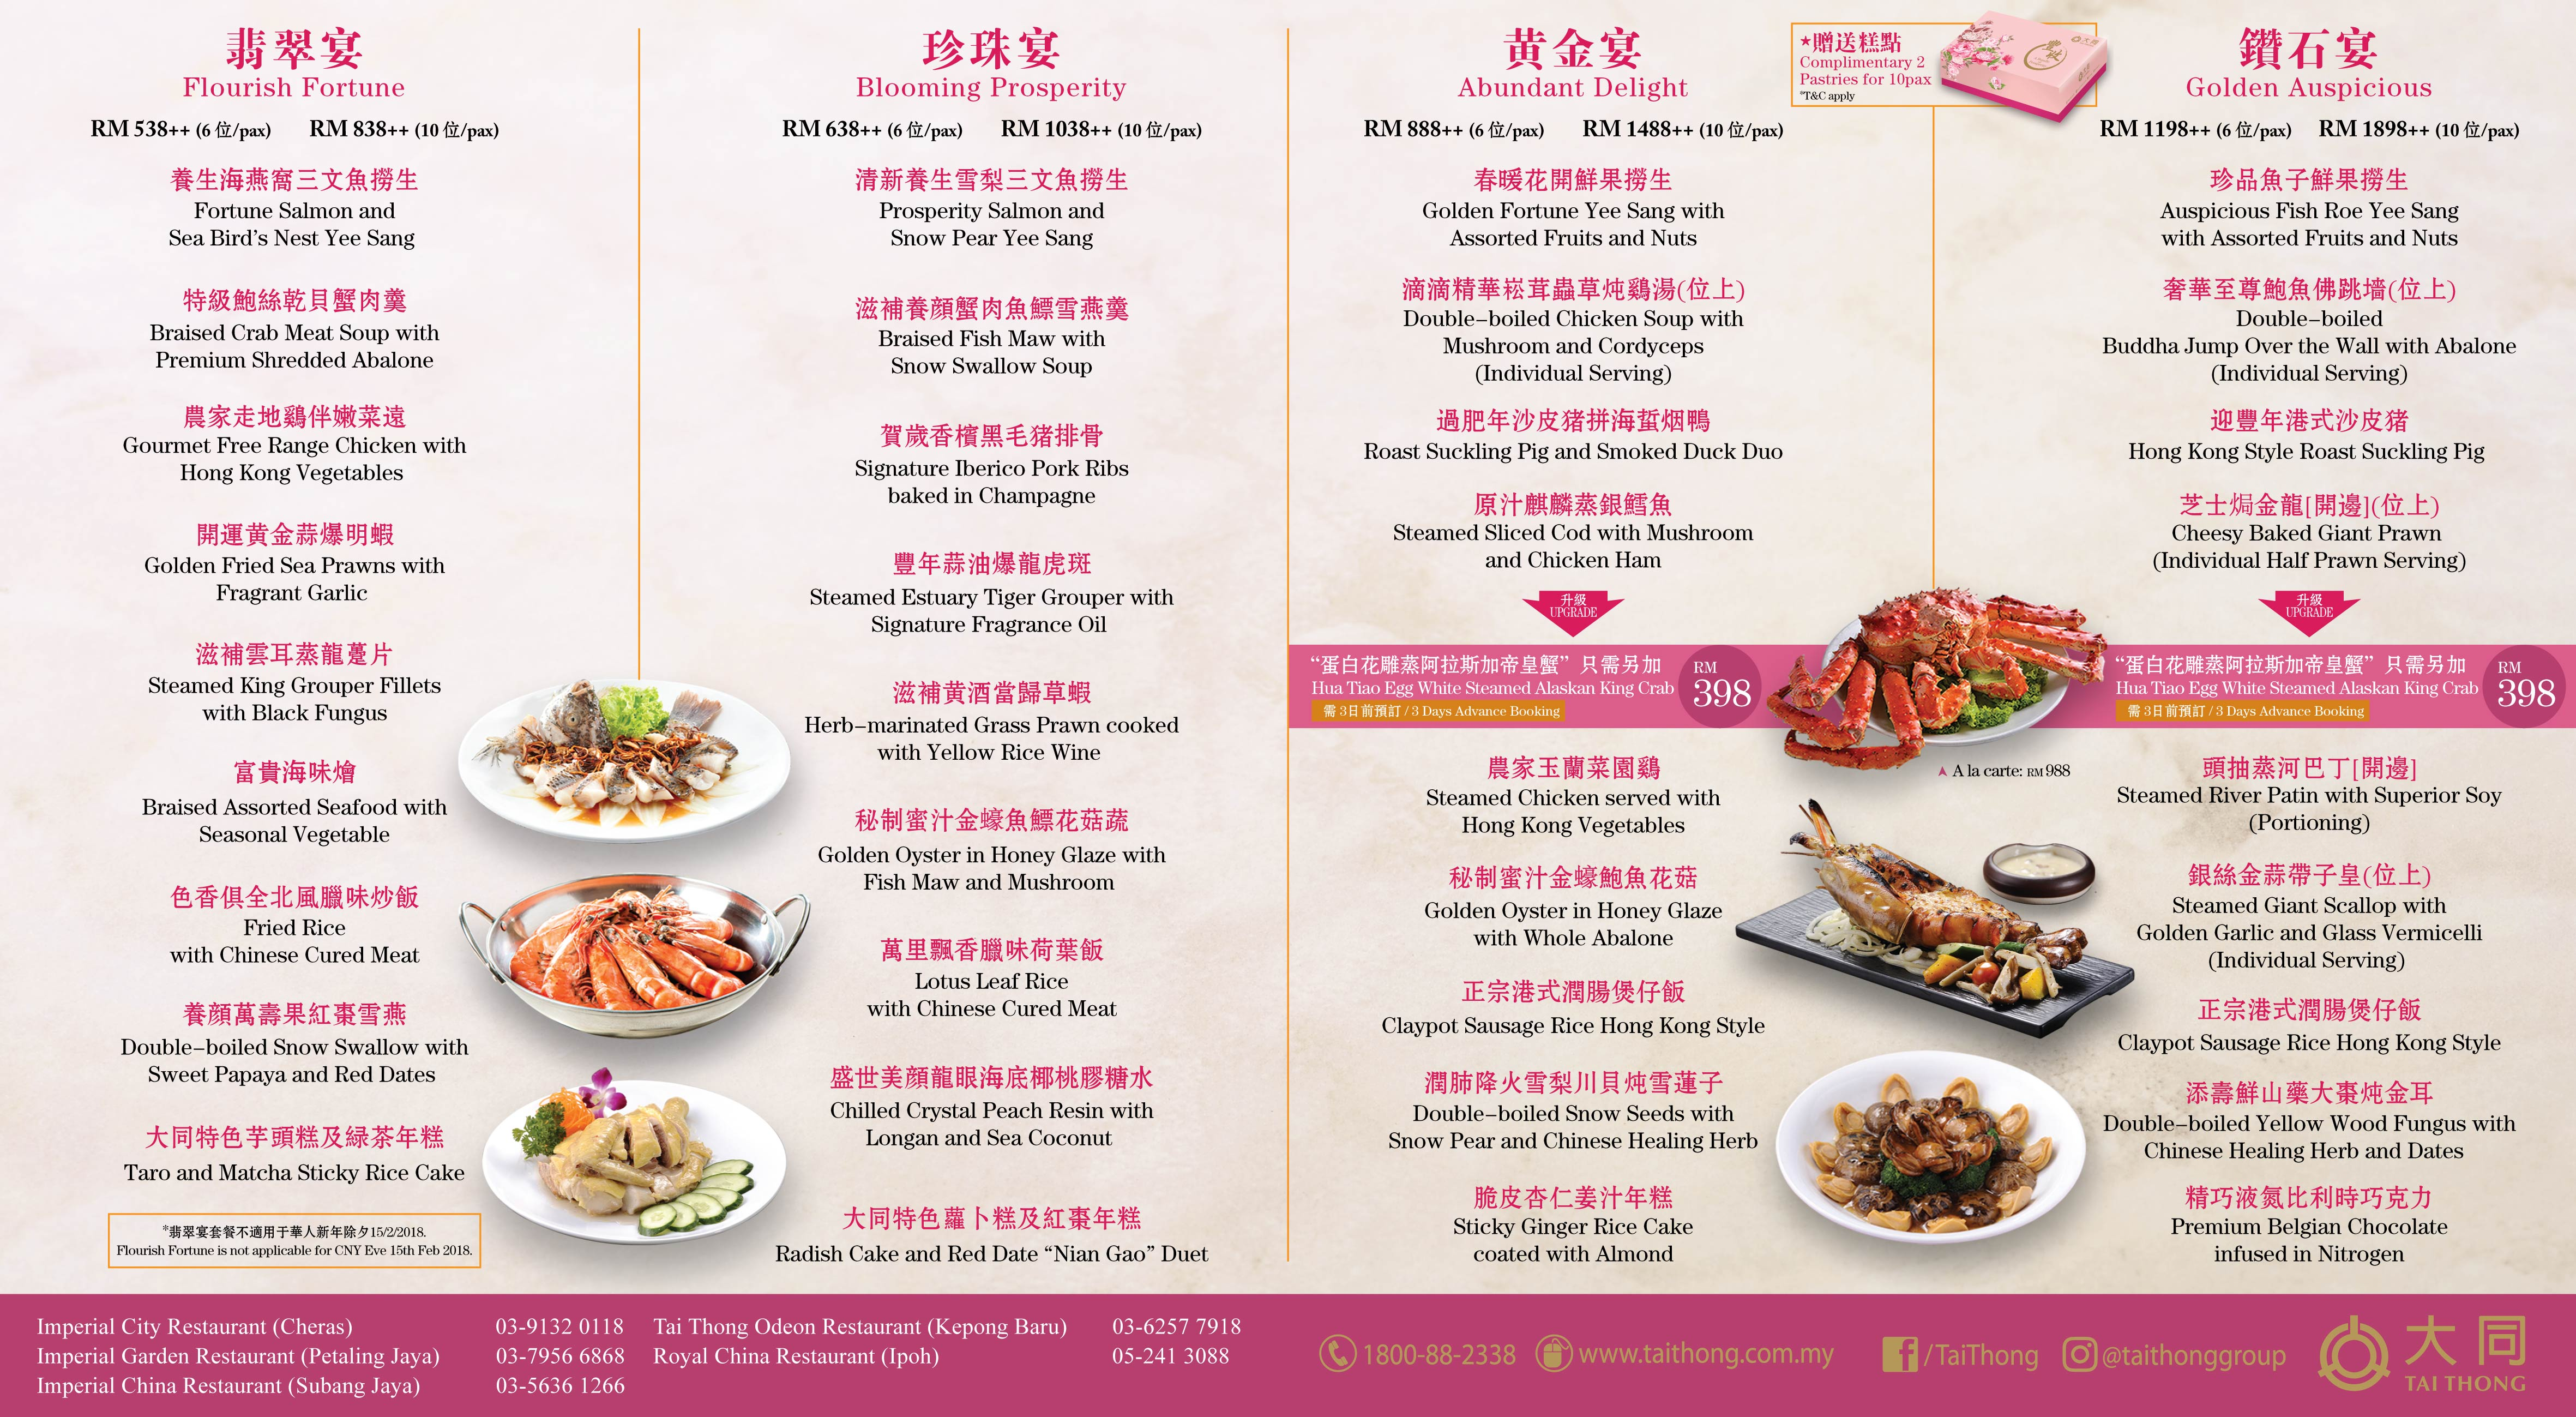 New Dragon Garden Restaurant